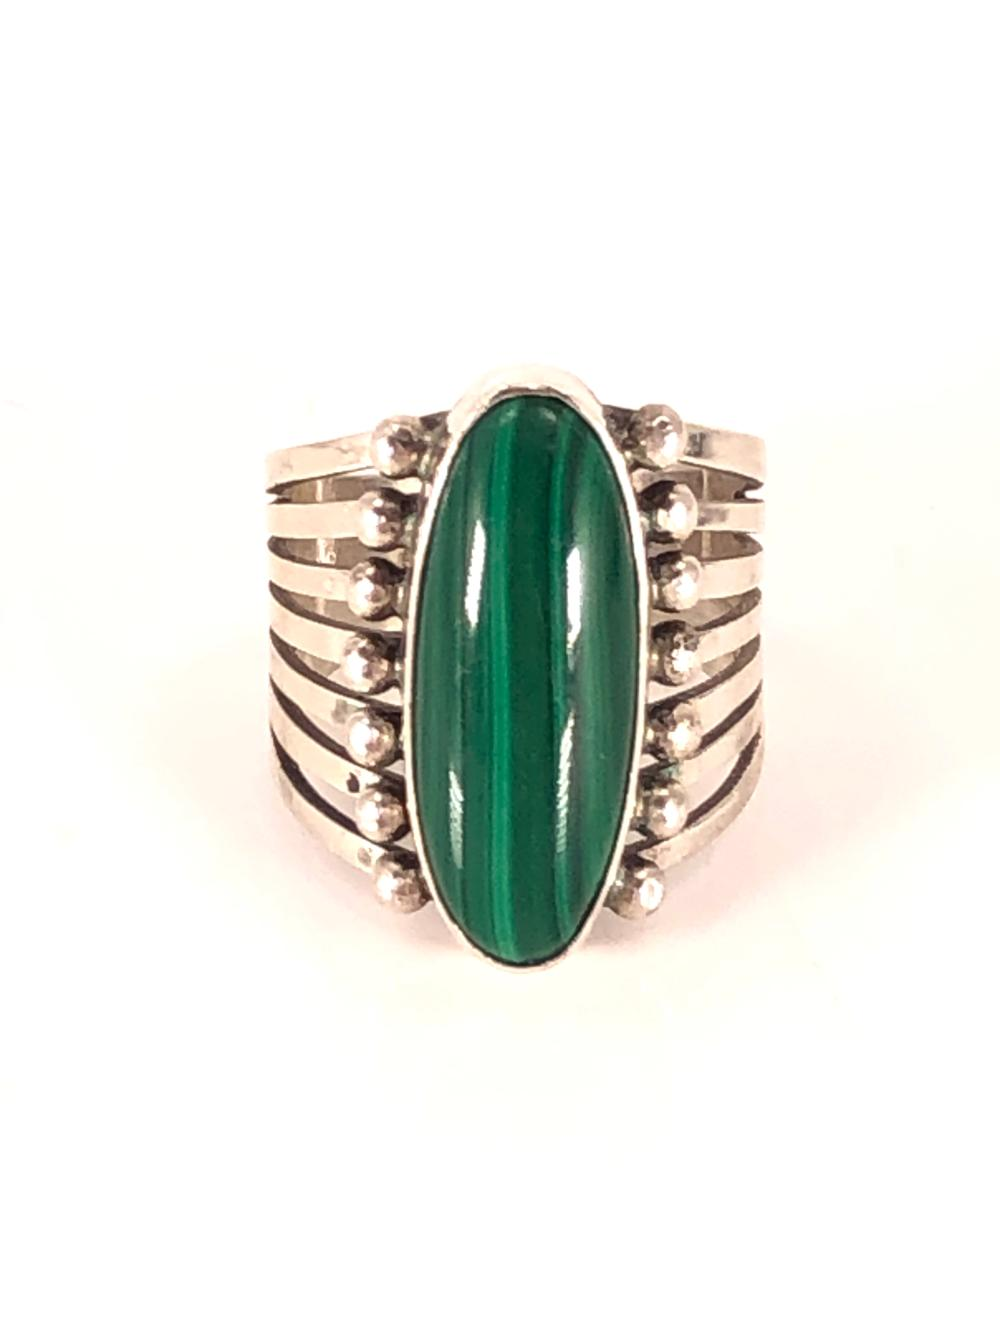 Southwest Sterling Silver and Malachite Ring